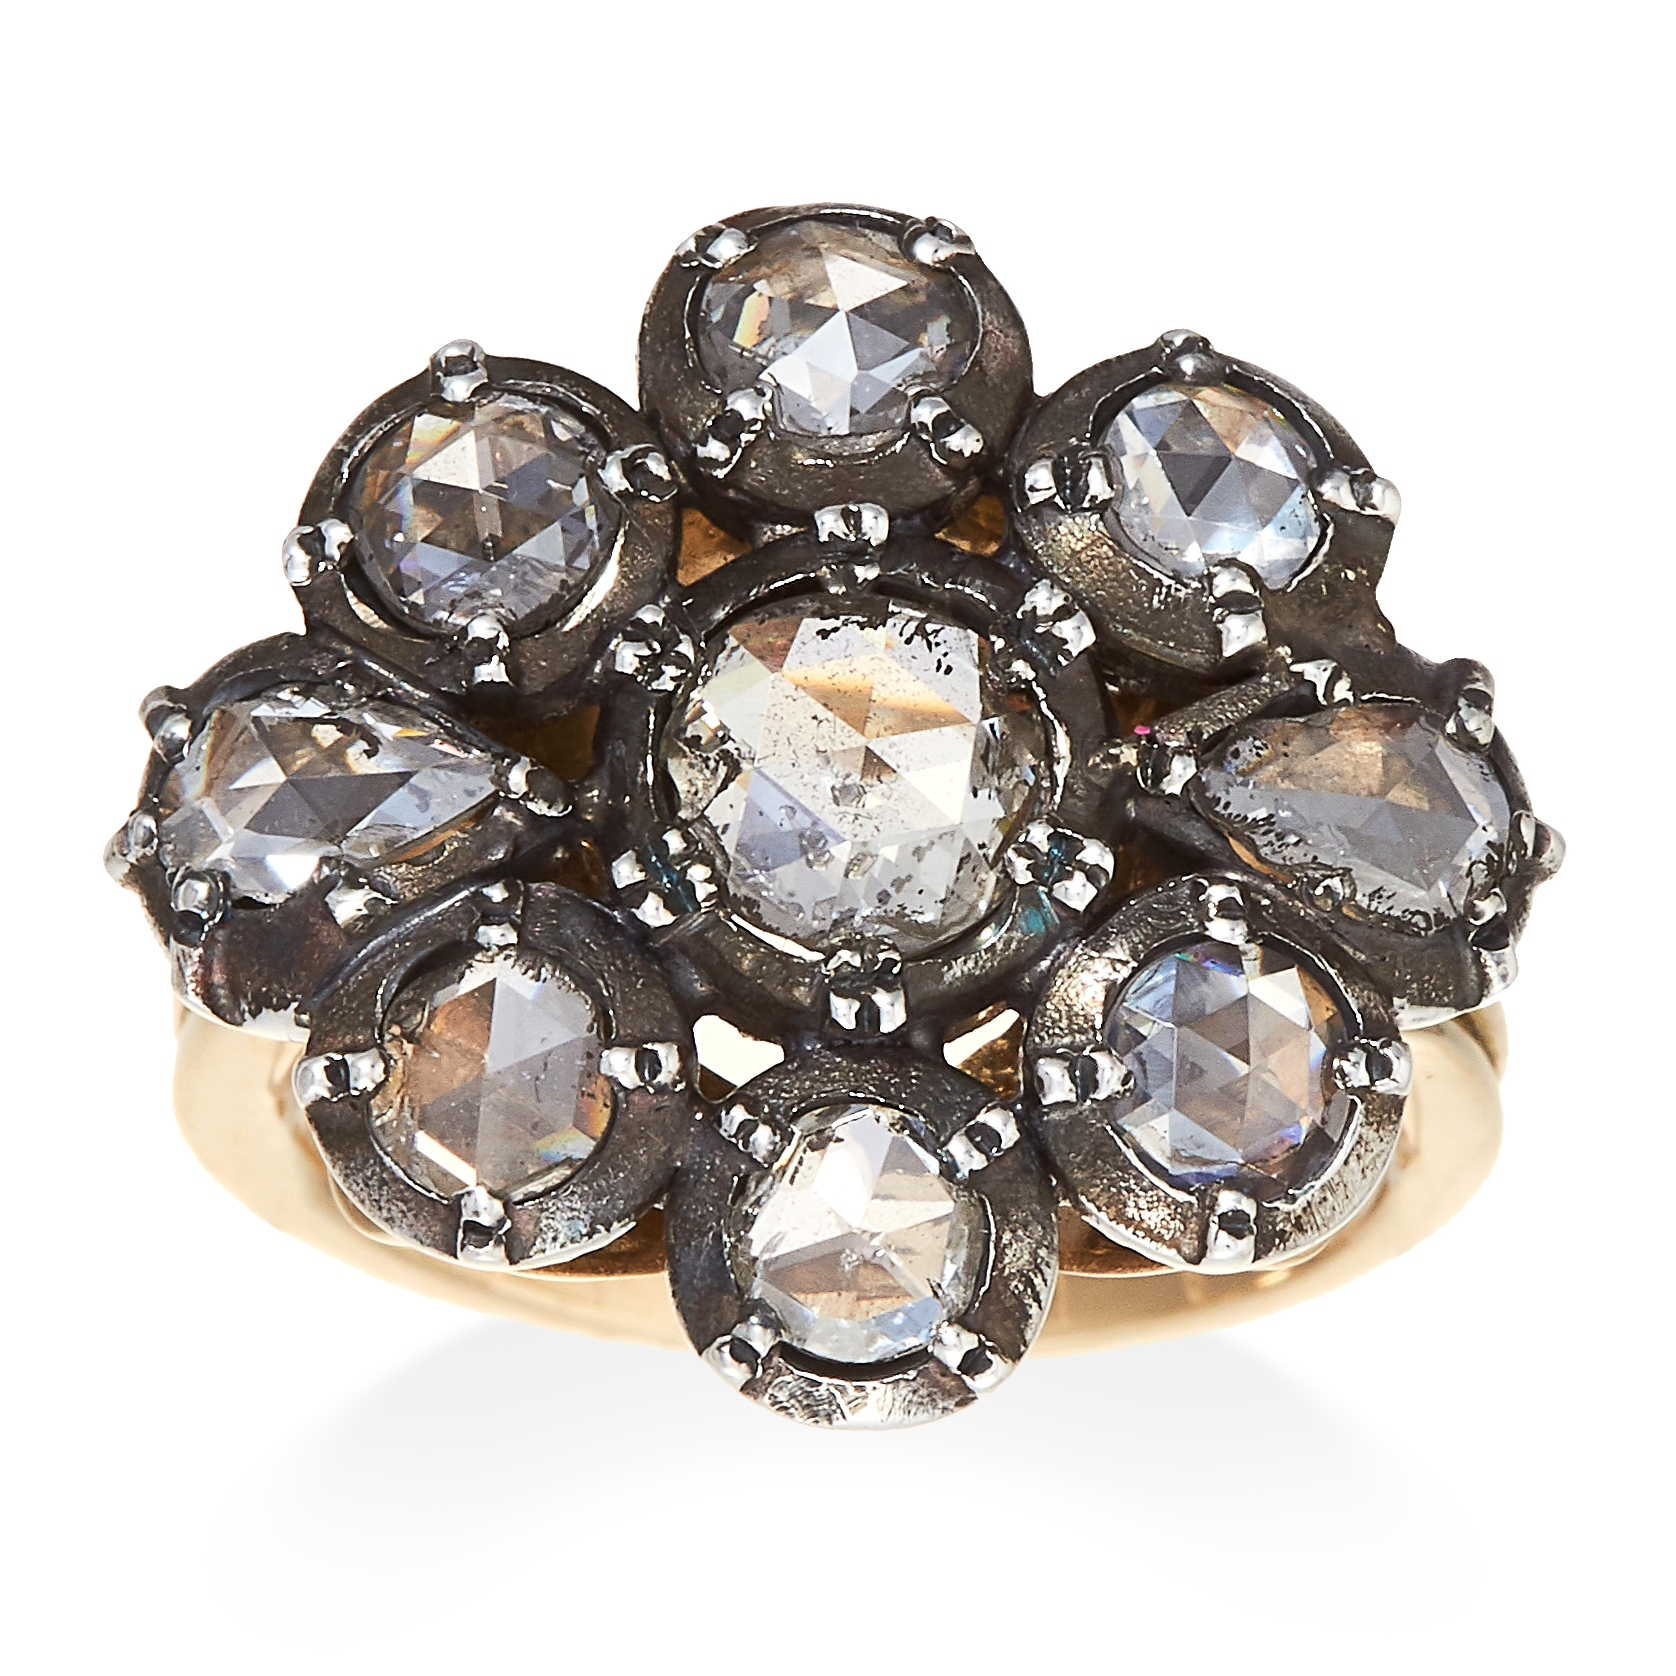 Los 15 - AN ANTIQUE DIAMOND CLUSTER RING in yellow gold and silver, set with a cluster of nine rose cut